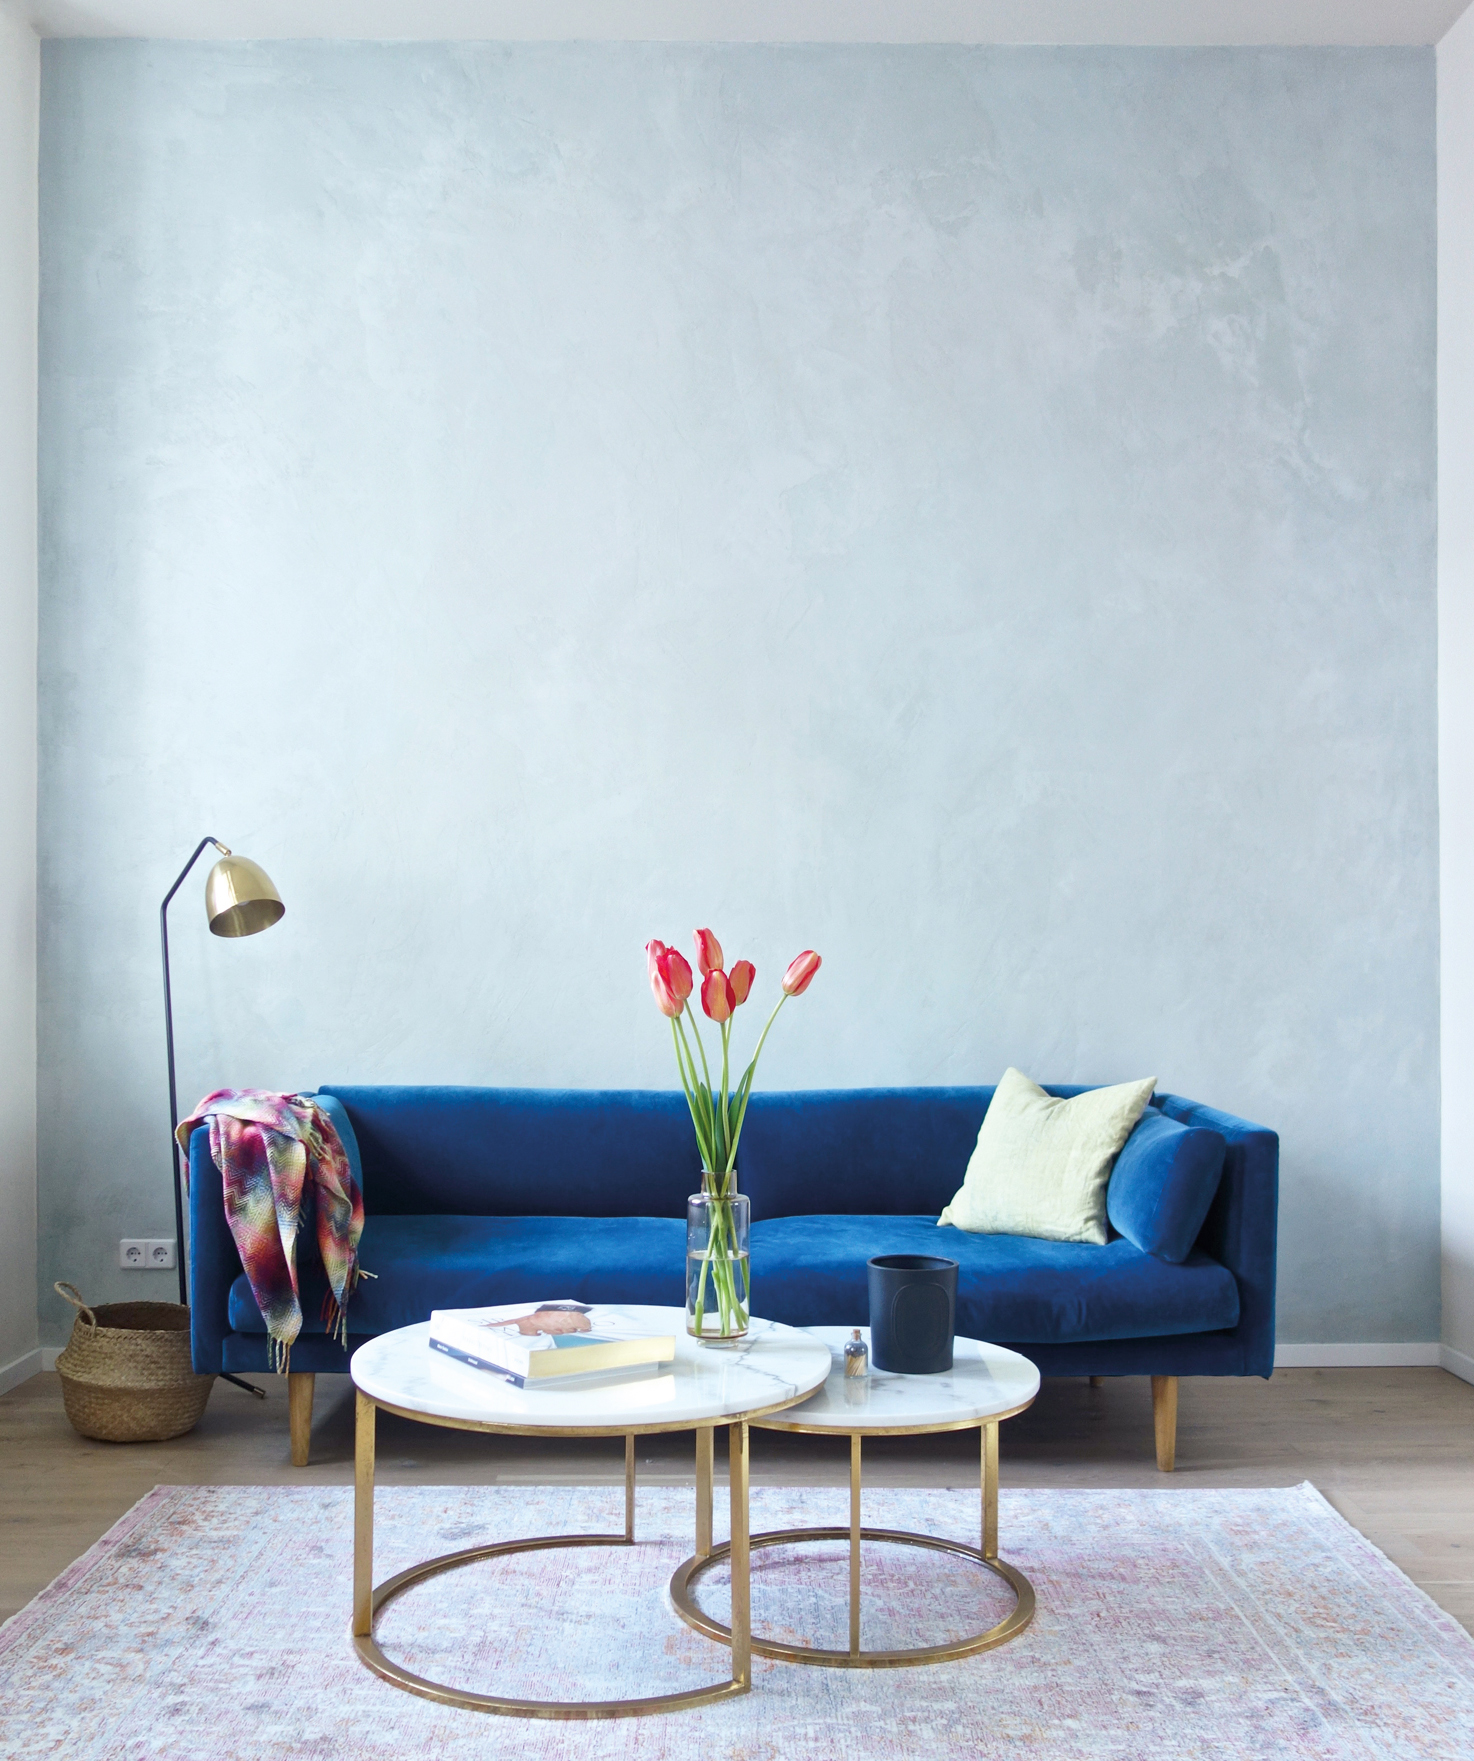 espanyolet_patina_pigmented_microcement)Blue wall.jpg